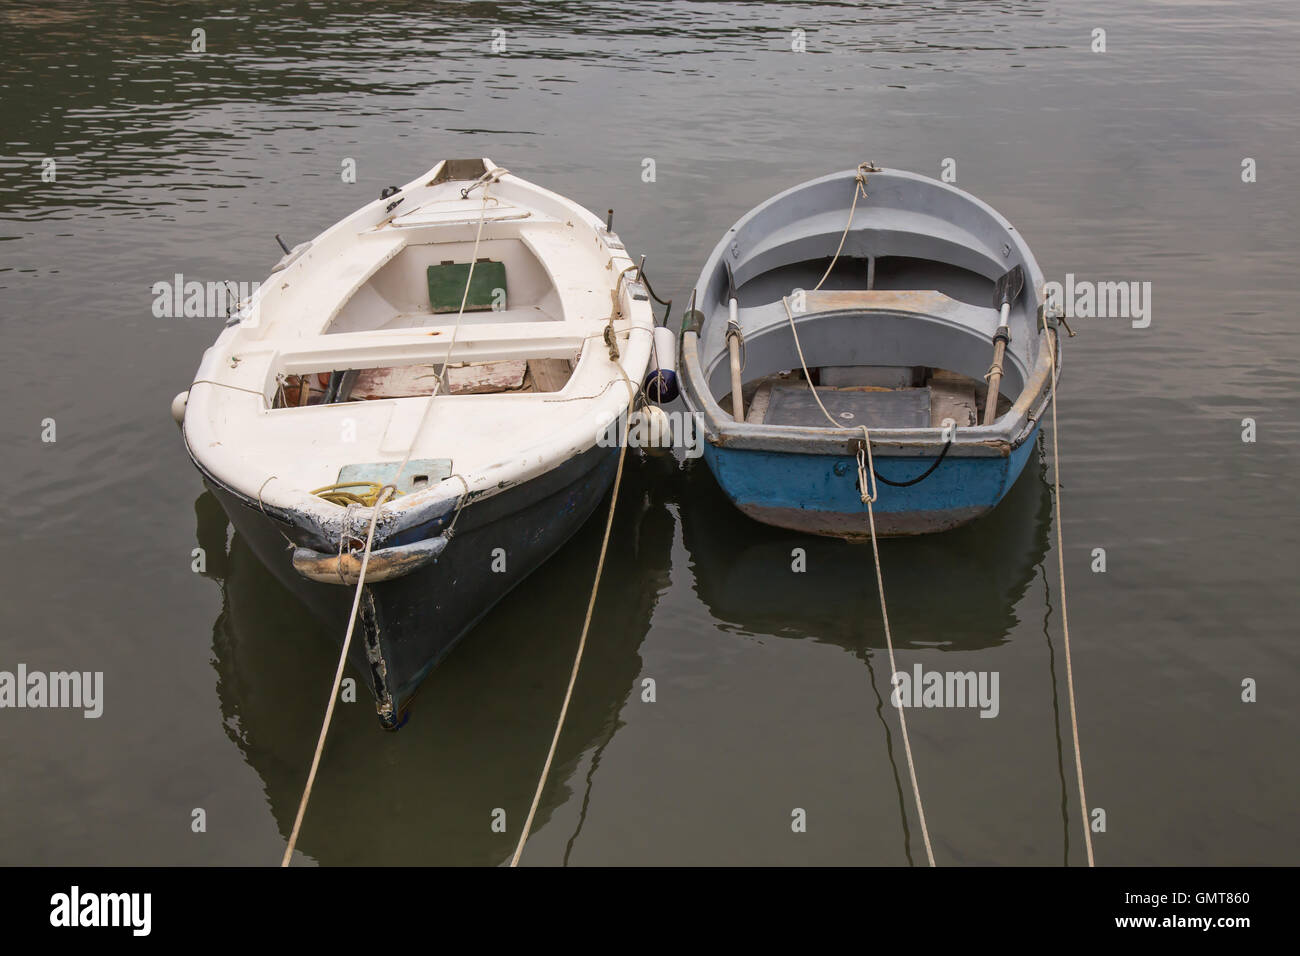 Two fishing boats anchored with ropes - Stock Image